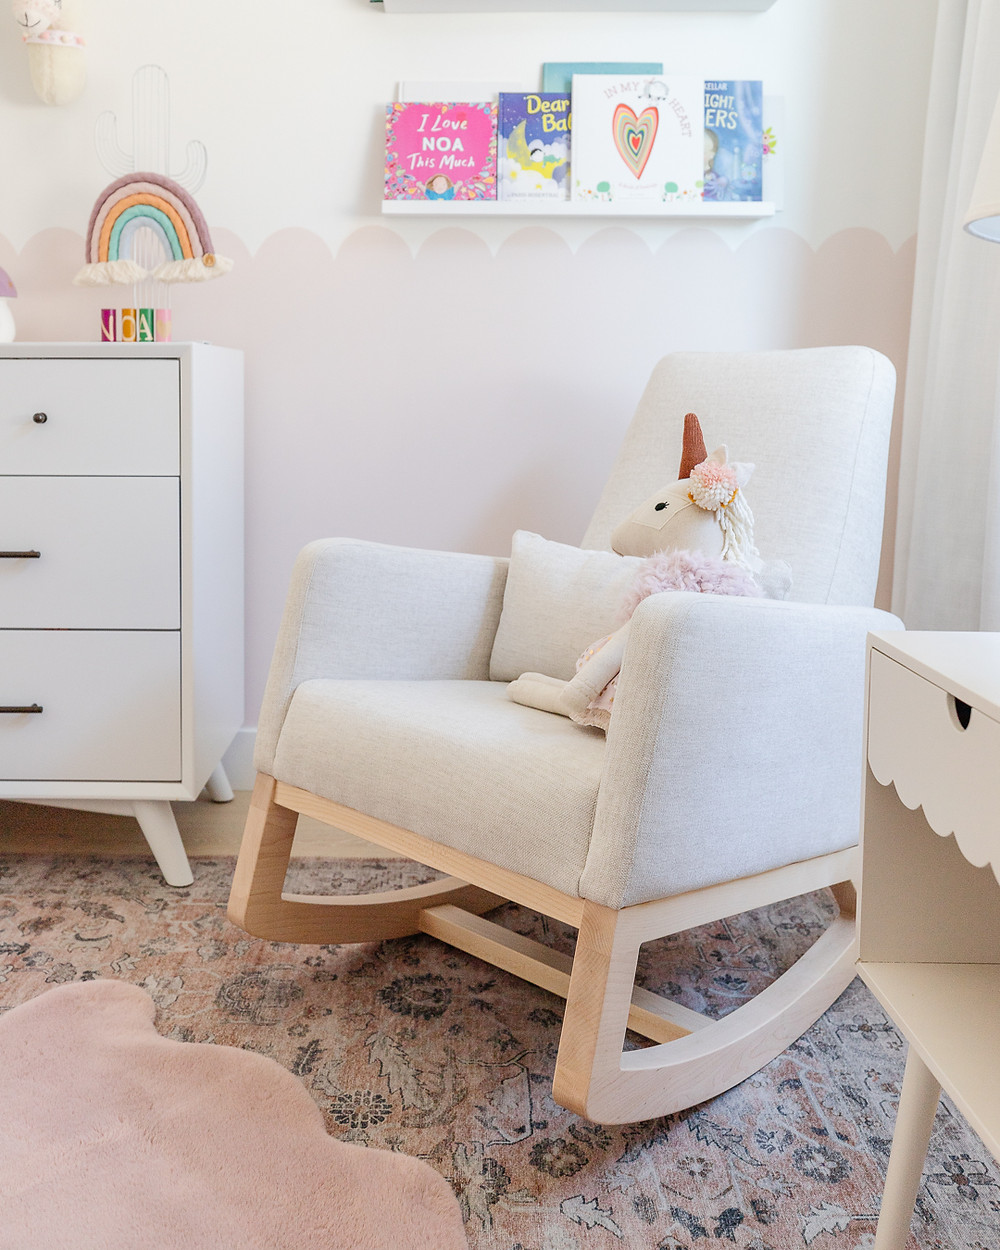 A boho modern baby girls nursery with llama and cactus wallpaper, a blush pink rug, a white rocking chair, a beaded light pendant, a white crib and a scalloped pink wall behind white drapery.